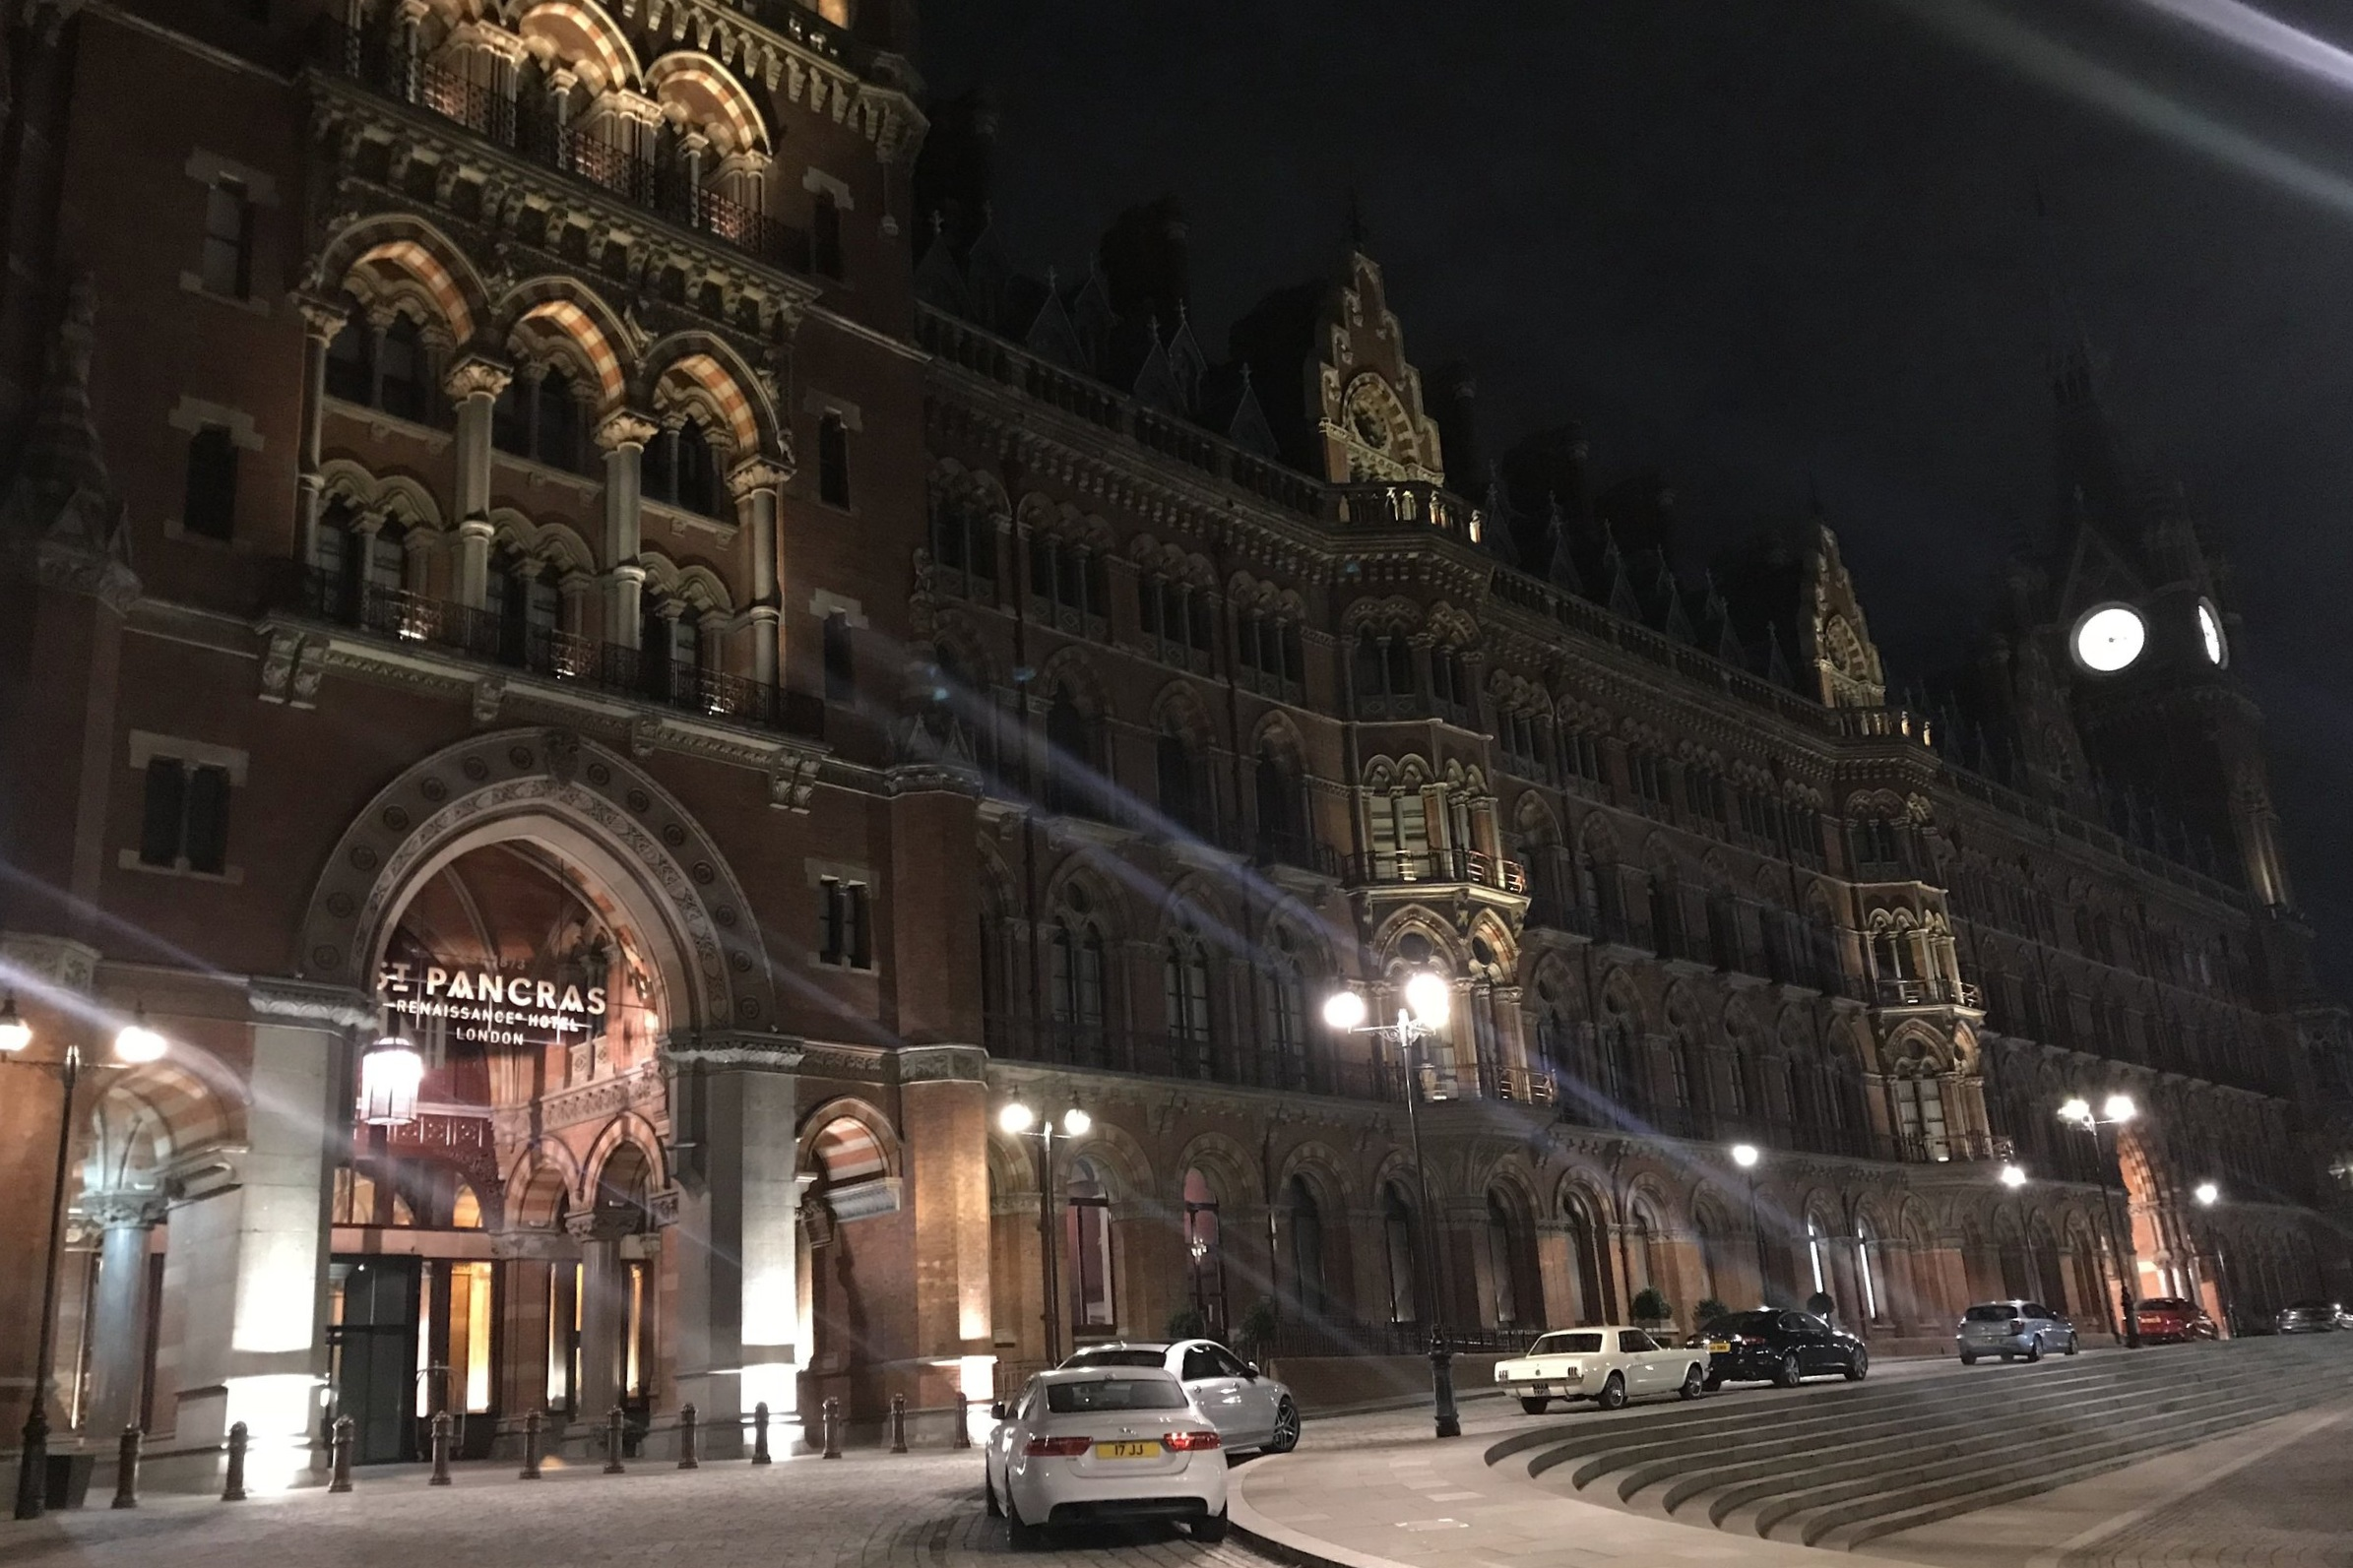 St. Pancras Renaissance Hotel London – Exterior by night